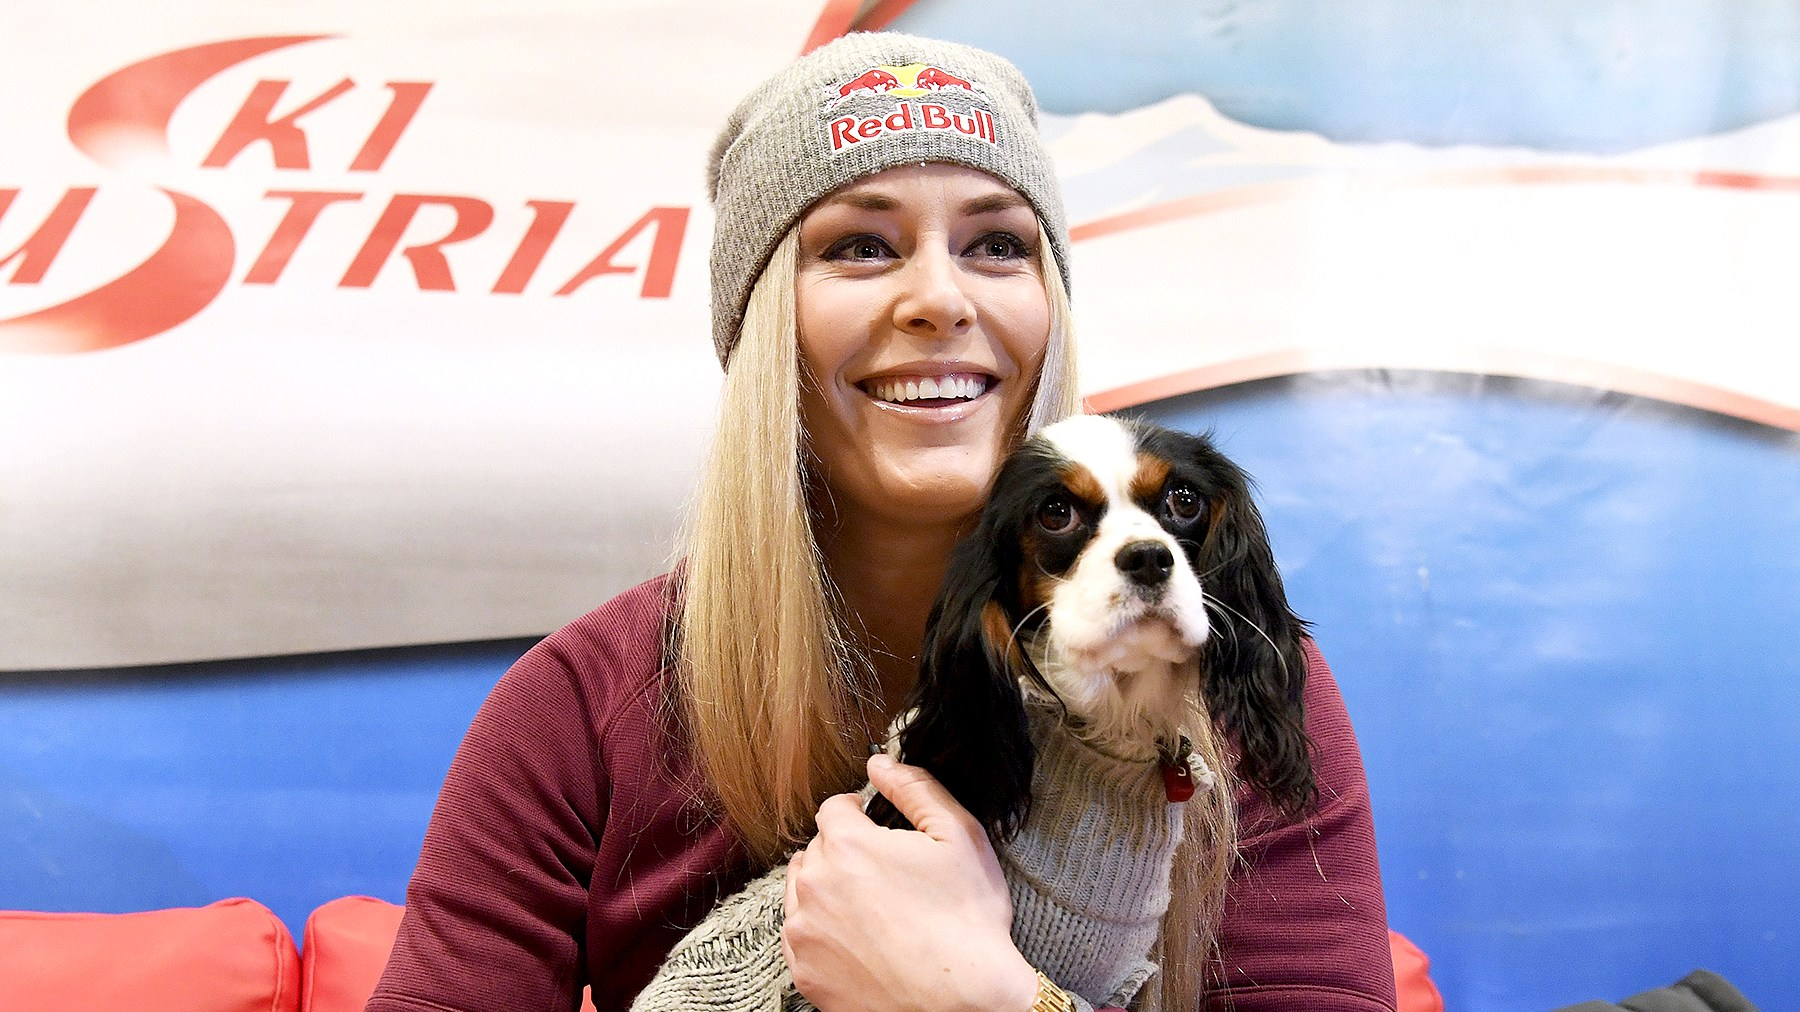 Lindsey Vonn and her dog Lucy are pictured during a press conference in Zauchensee, Austria, on January 12, 2017.